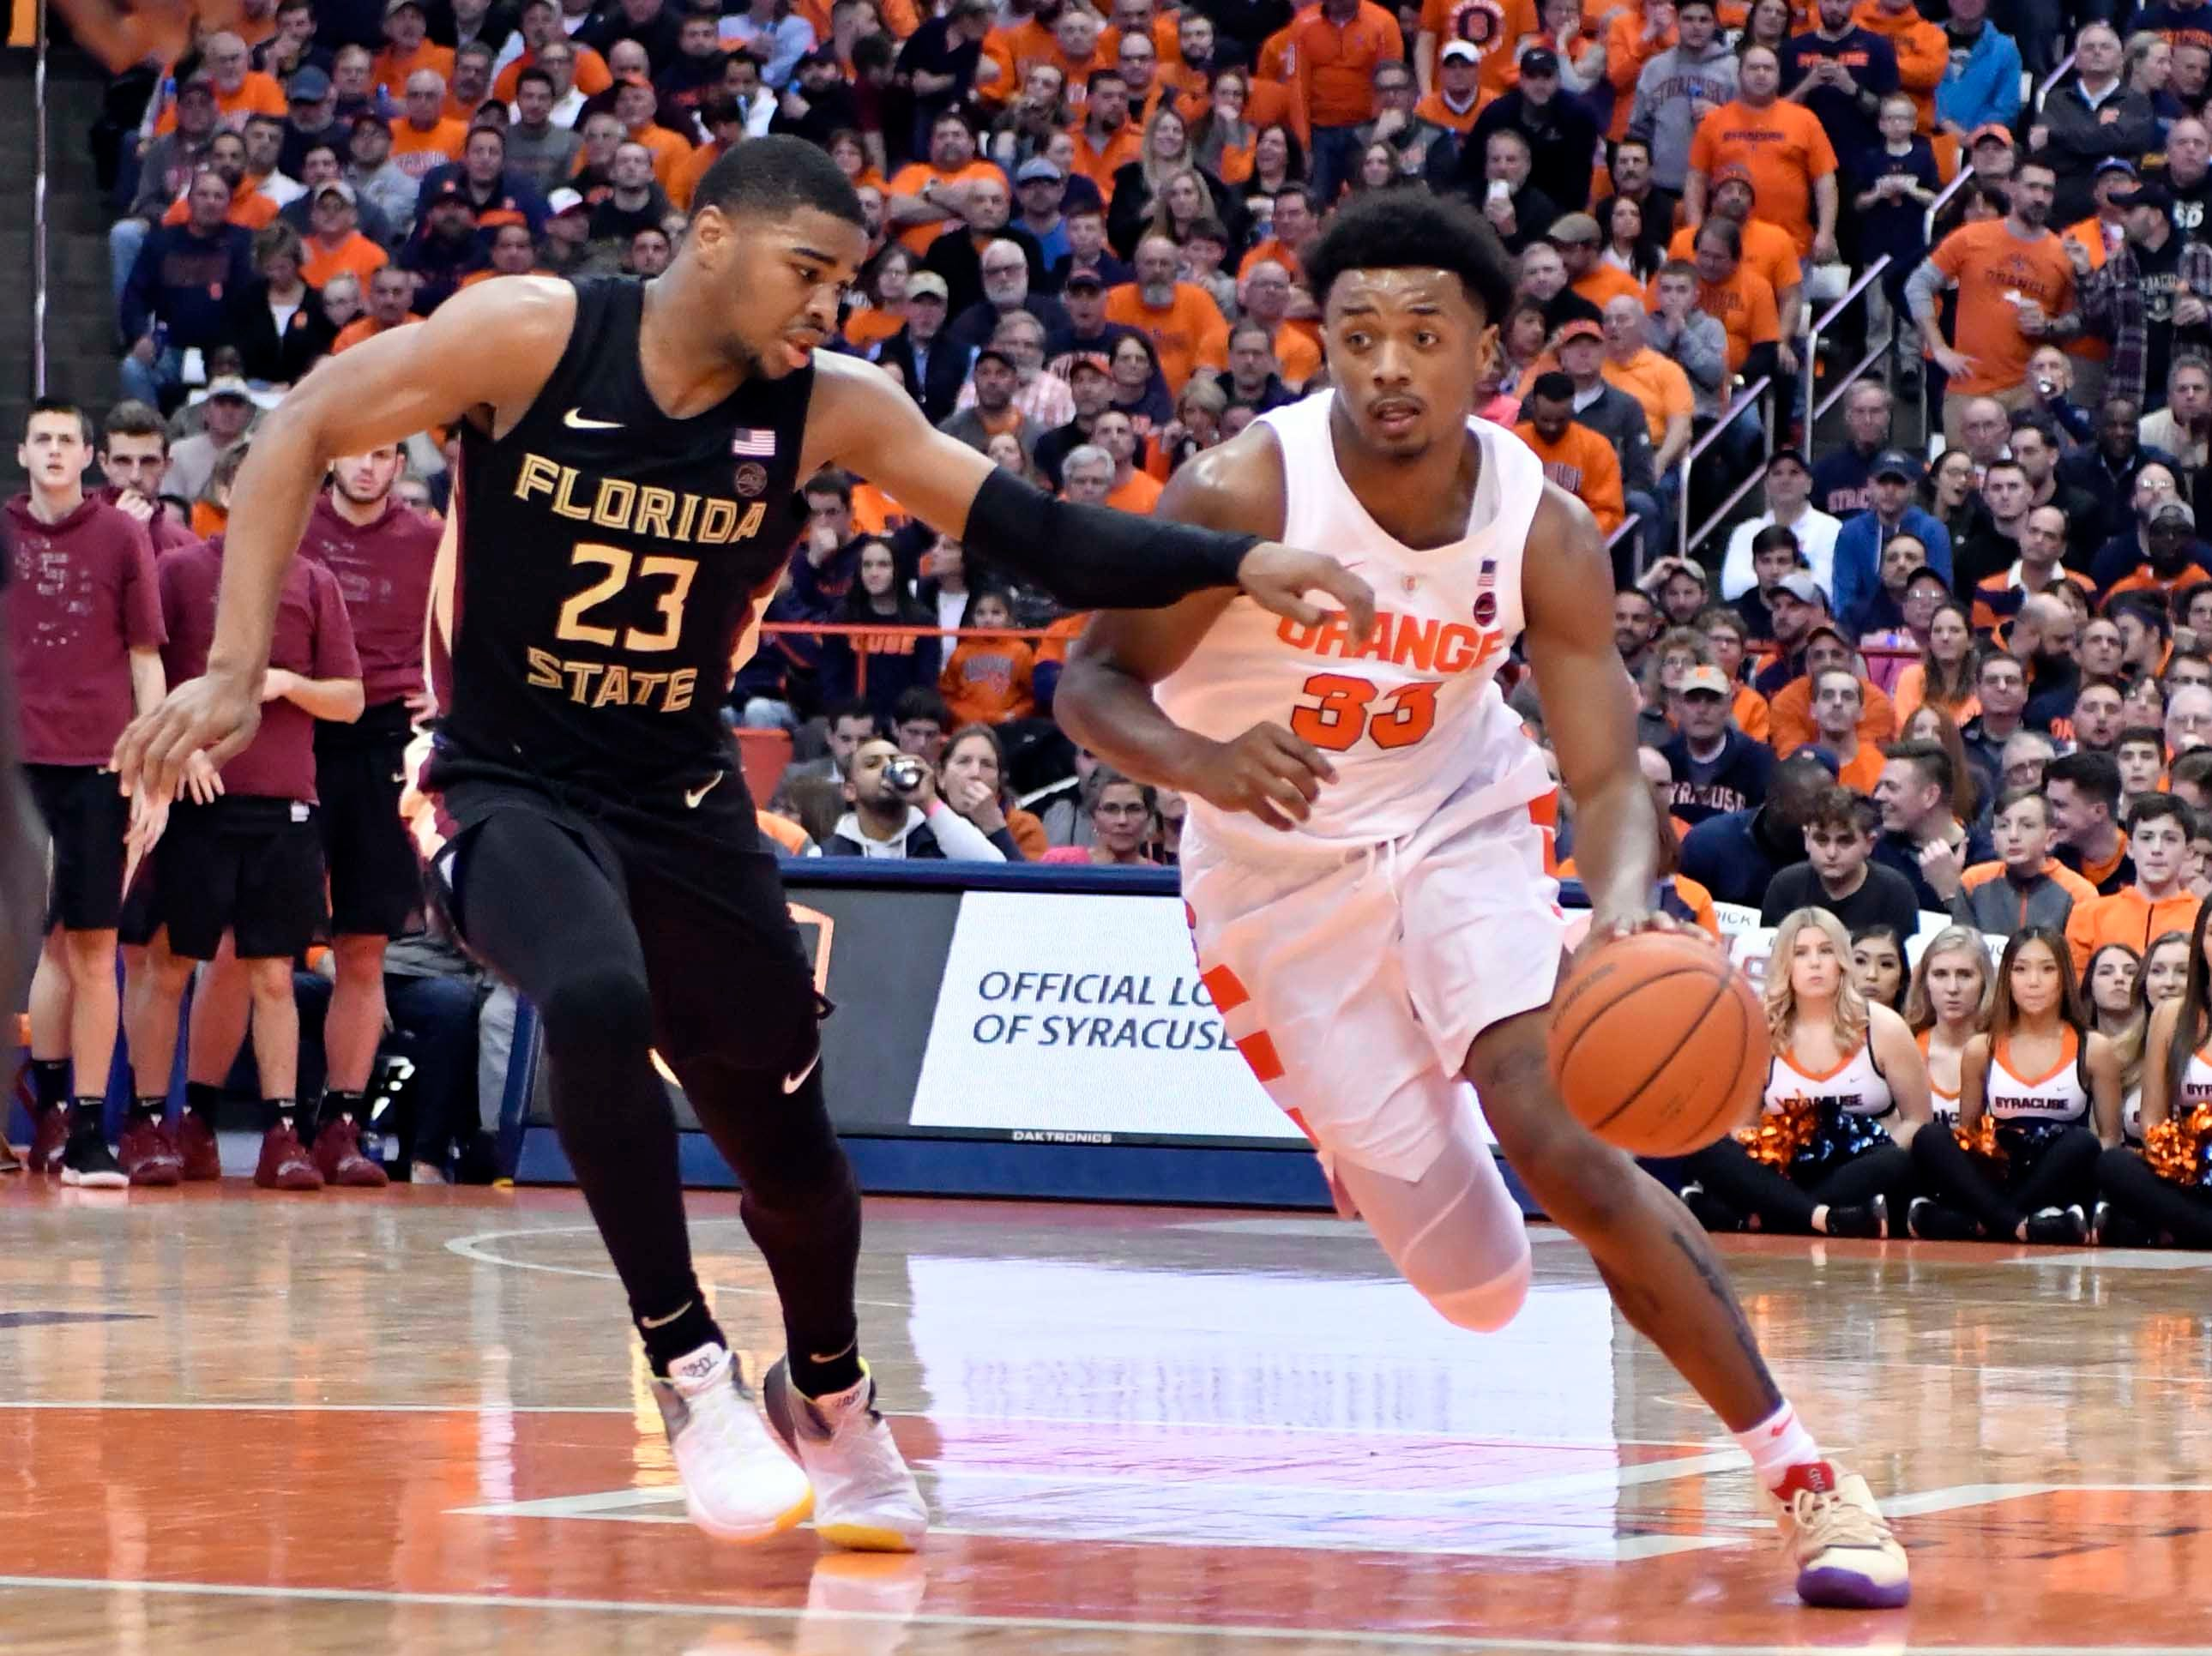 Feb 5, 2019; Syracuse, NY, USA; Syracuse Orange forward Elijah Hughes (33) works to drive the ball past Florida State Seminoles guard M.J. Walker (23) in the second half at the Carrier Dome. Mandatory Credit: Mark Konezny-USA TODAY Sports